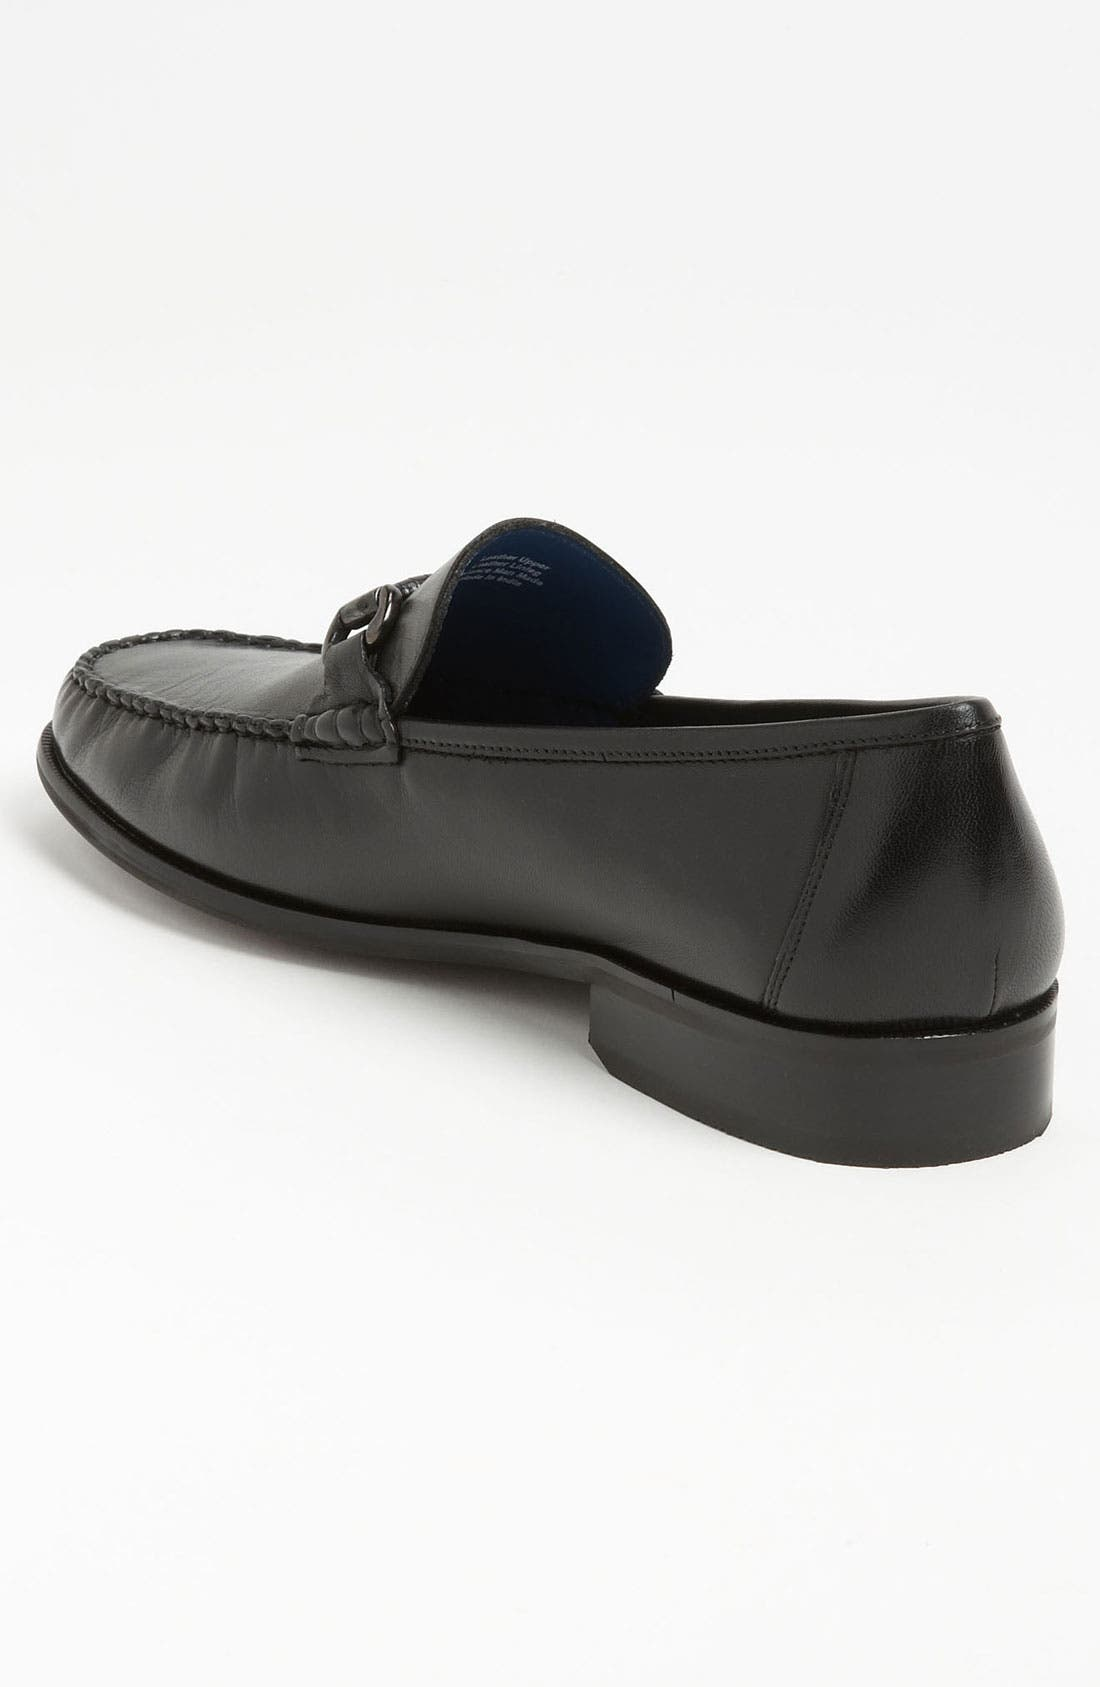 'Sarasota' Bit Loafer,                             Alternate thumbnail 2, color,                             Black Smooth